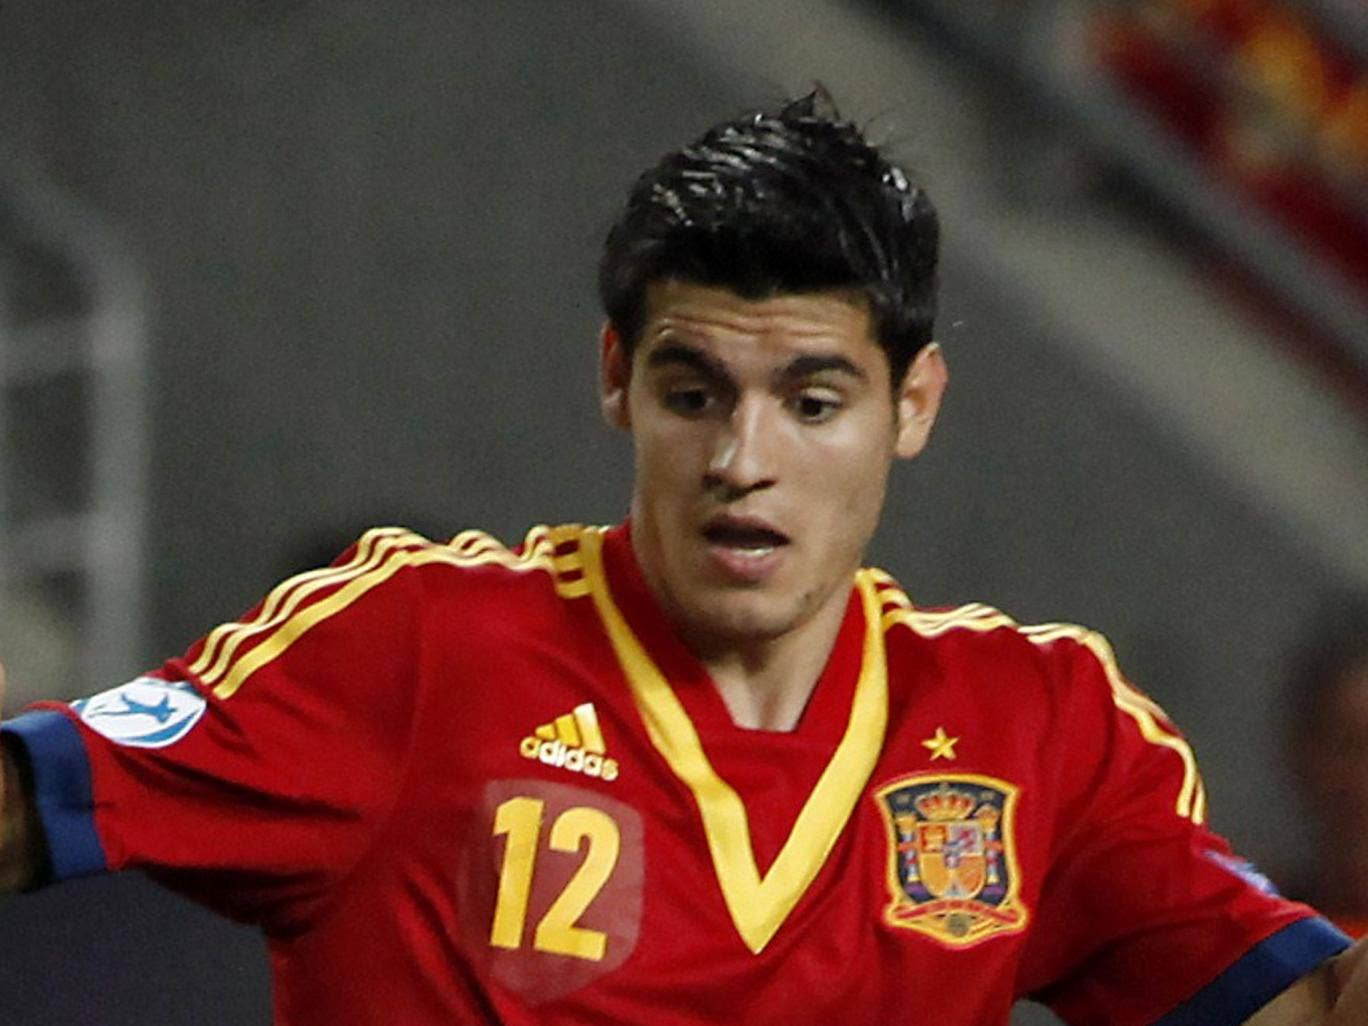 Alvaro Morata – The goal poacher extraordinaire